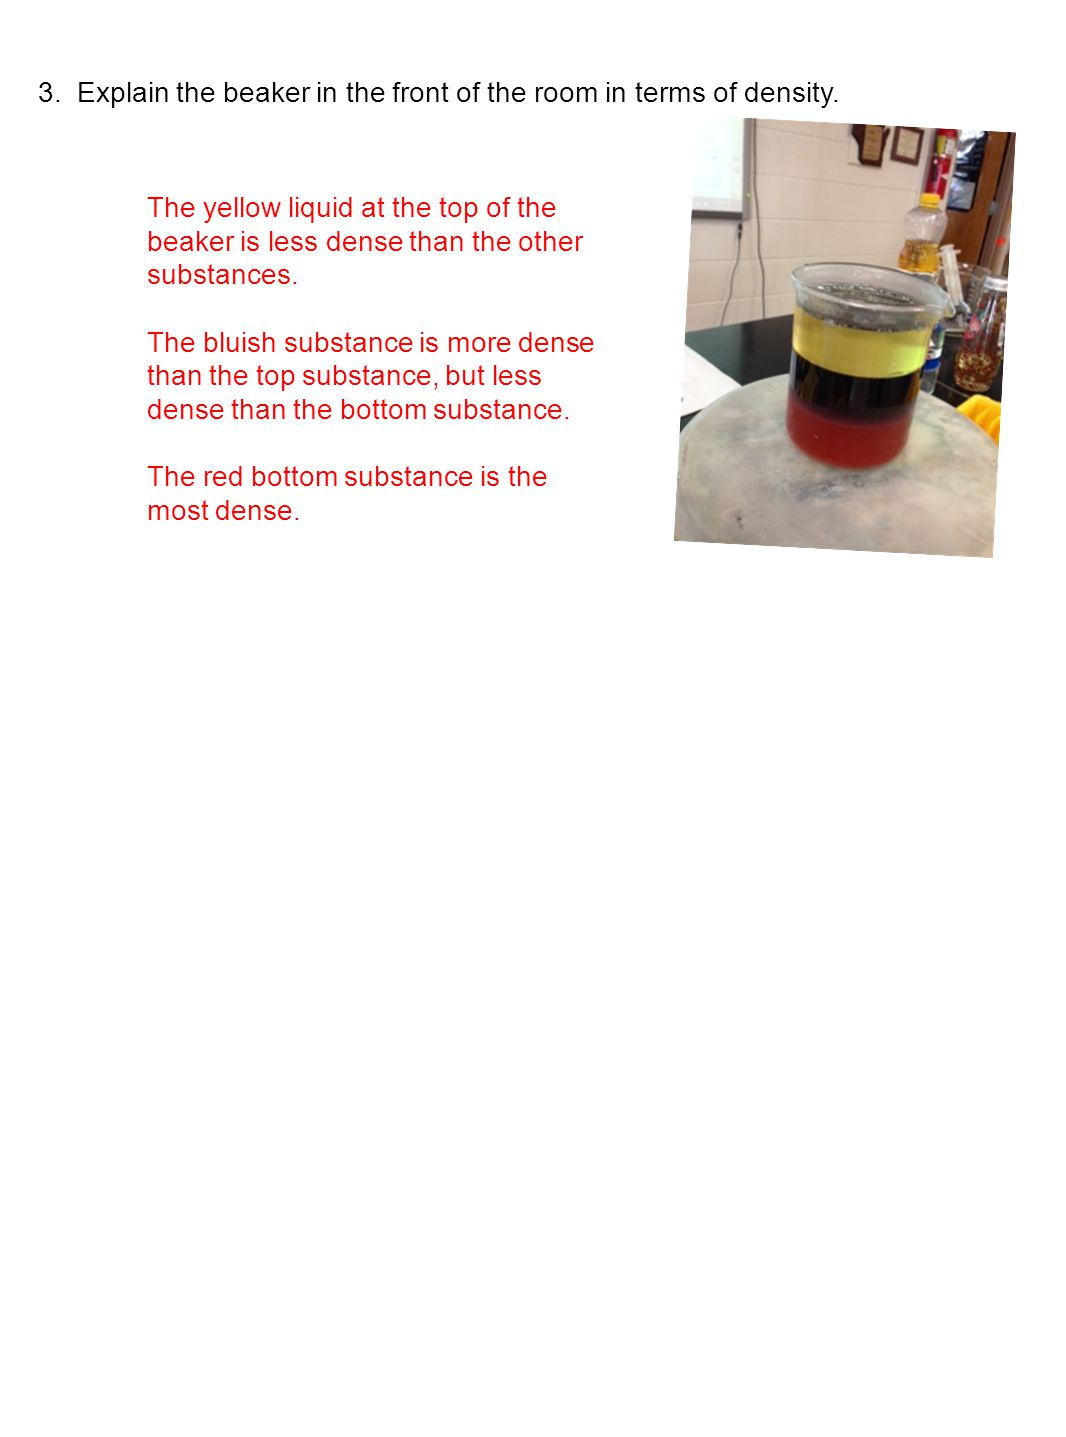 3. Explain the beaker in the front of the room in terms of density. The yellow liquid at the top of the beaker is less dense than the other substances